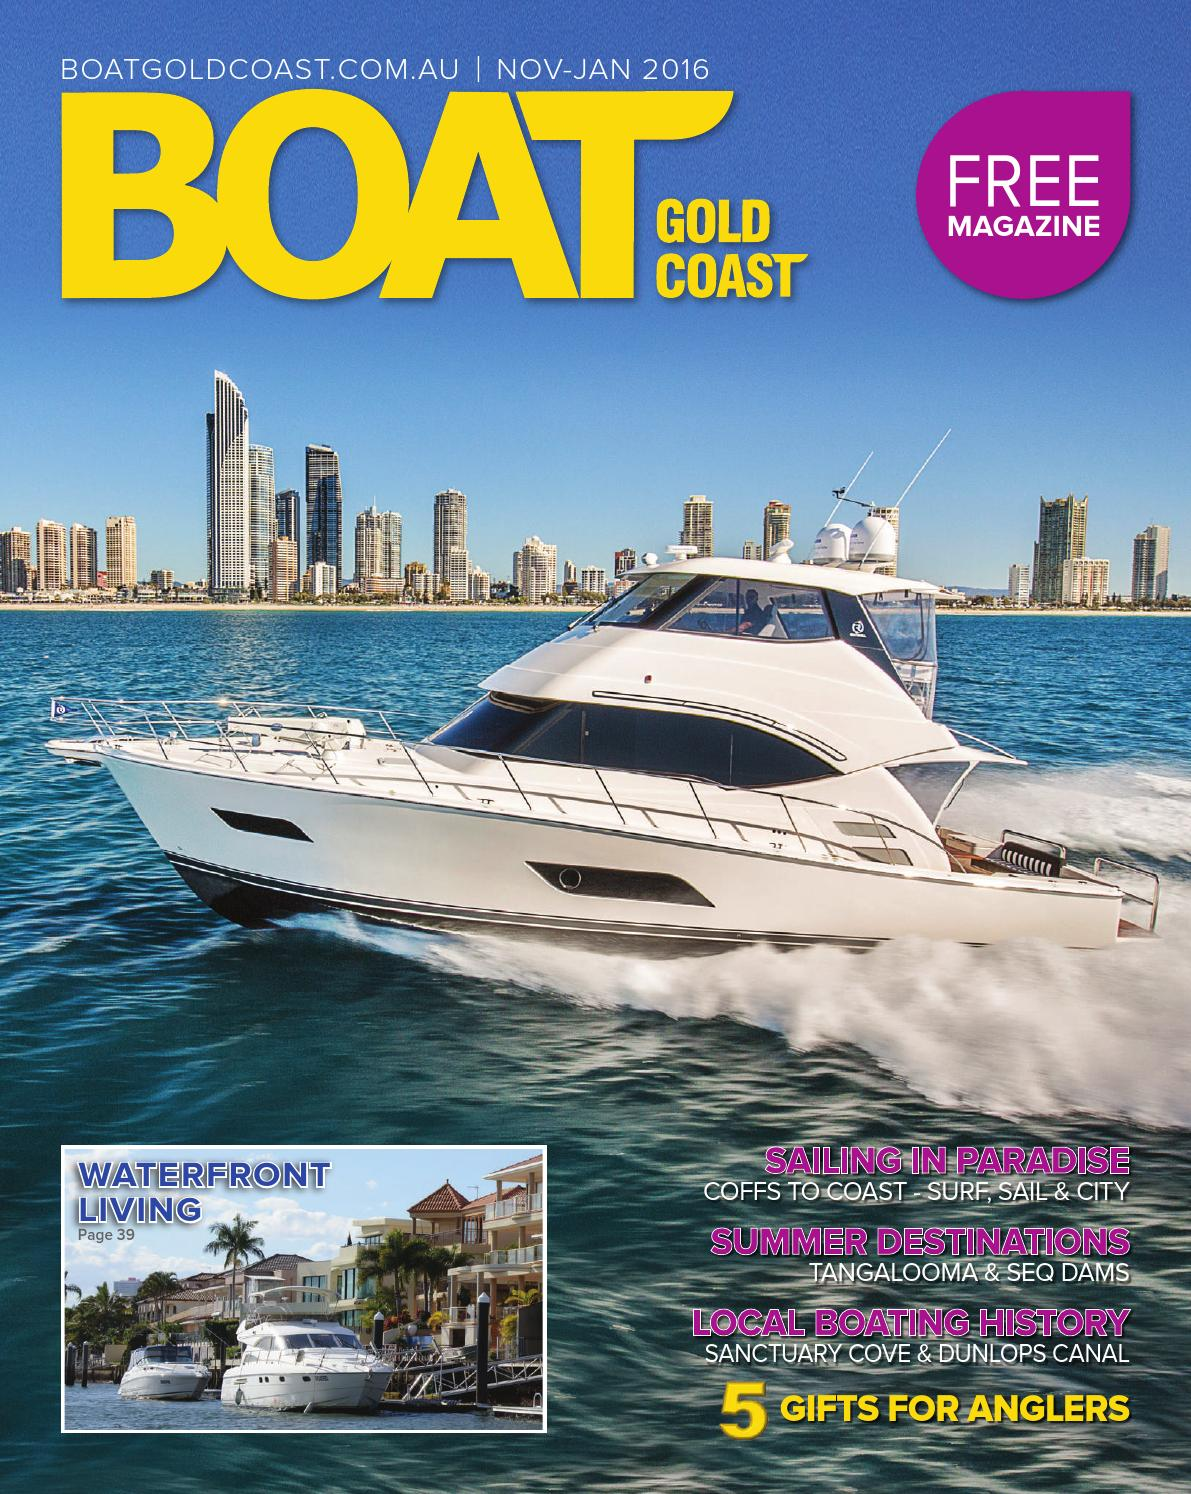 BOAT GOLD COAST MAGAZINE NOV - JAN 2016 by BOAT GOLD COAST - issuu Free Electrical Wiring Diagrams Raven Boat on boat electrical panel, sailing boats parts diagrams, boat motor wiring, boat grounding diagrams, boat wiring diagram printable, boat starter wiring diagram, boat circuit diagram, basic ac electrical power diagrams, marine electrical panel diagrams, boat gauge wiring diagram, basic electrical schematic diagrams, lund boat diagrams, square d electrical panels diagrams, boat construction diagram, boat wire diagrams, boat electrical systems, boat wiring harness, tracker boat electrical diagrams, boat tach wiring diagram, boat diagrams basic,